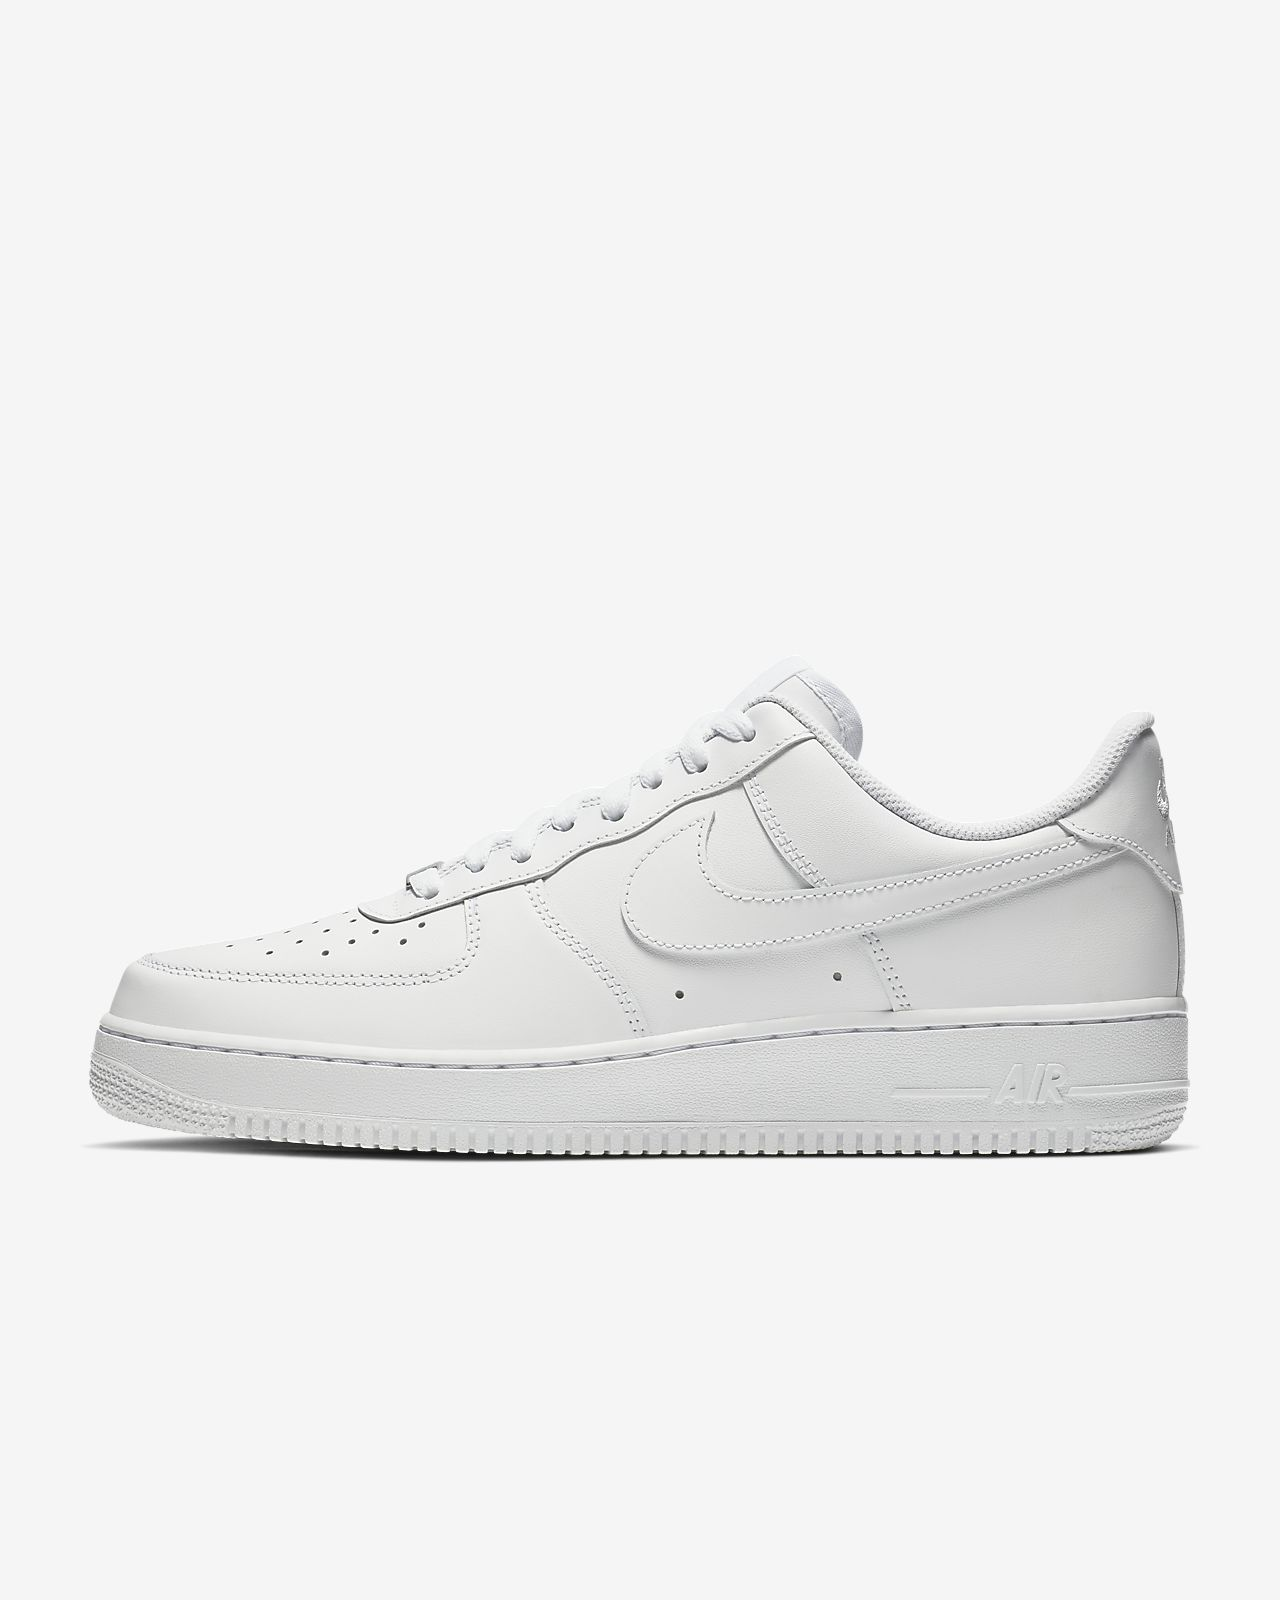 official photos 1b912 ff2d9 ... Chaussure Nike Air Force 1  07